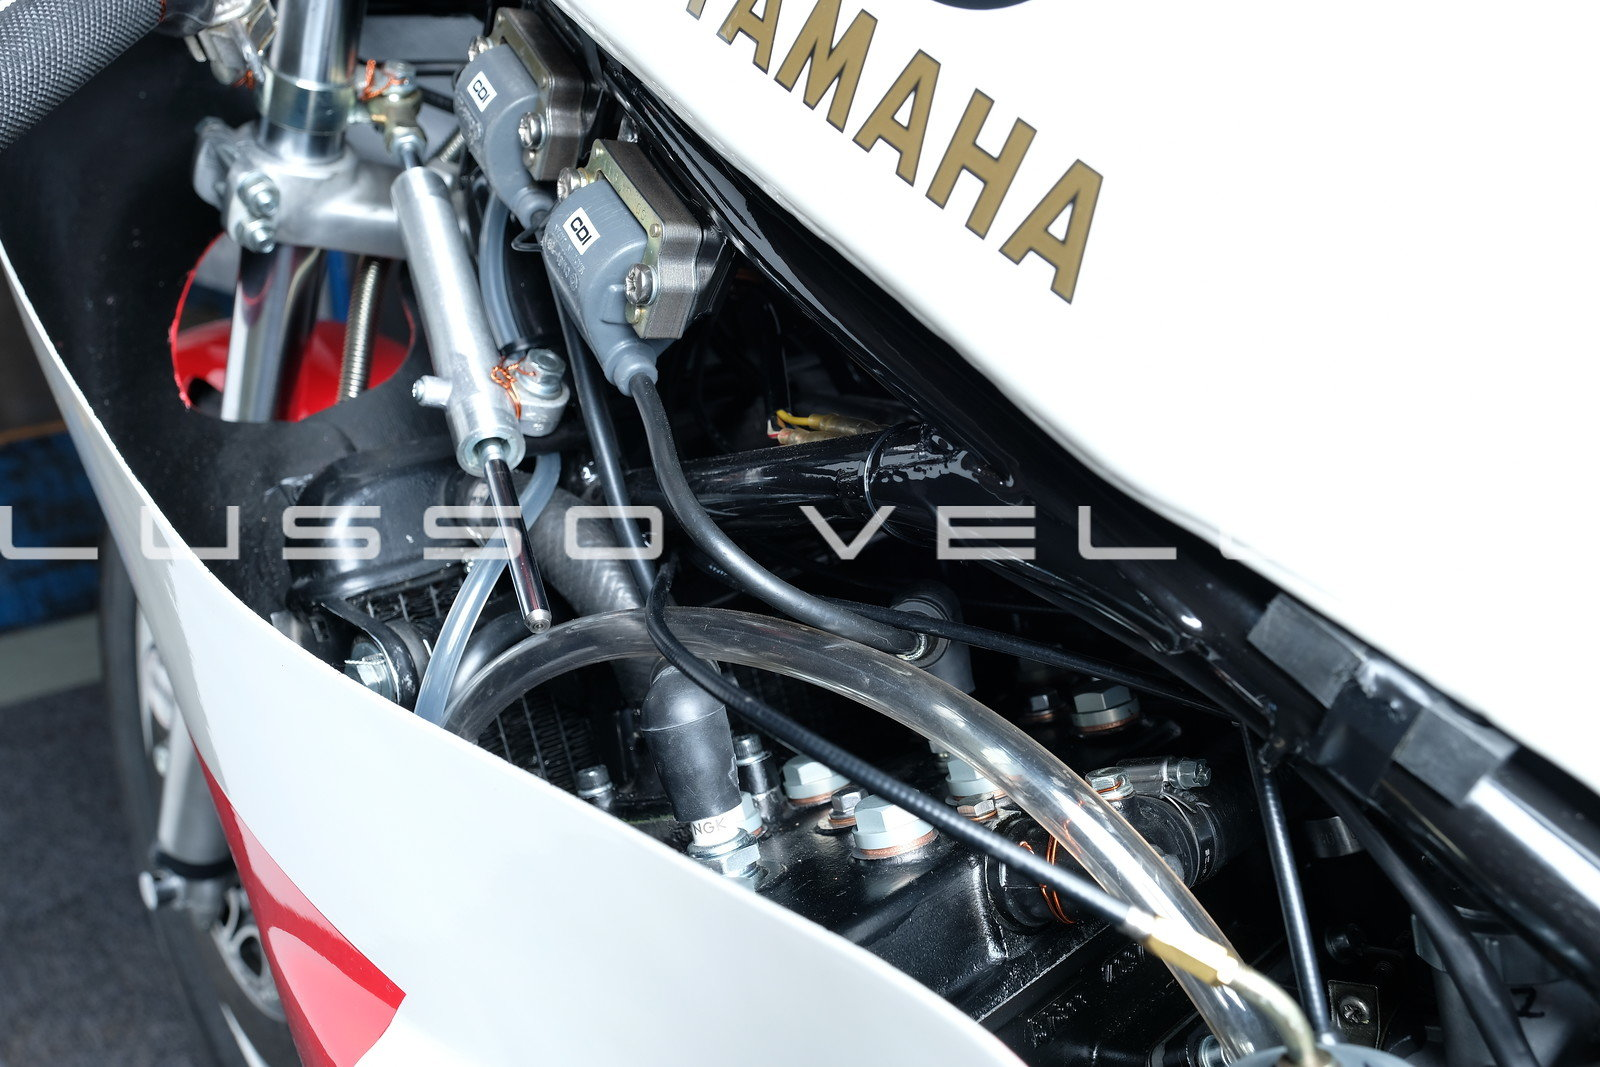 1975 Yamaha TZ 750 C GP Race bike  For Sale (picture 3 of 6)